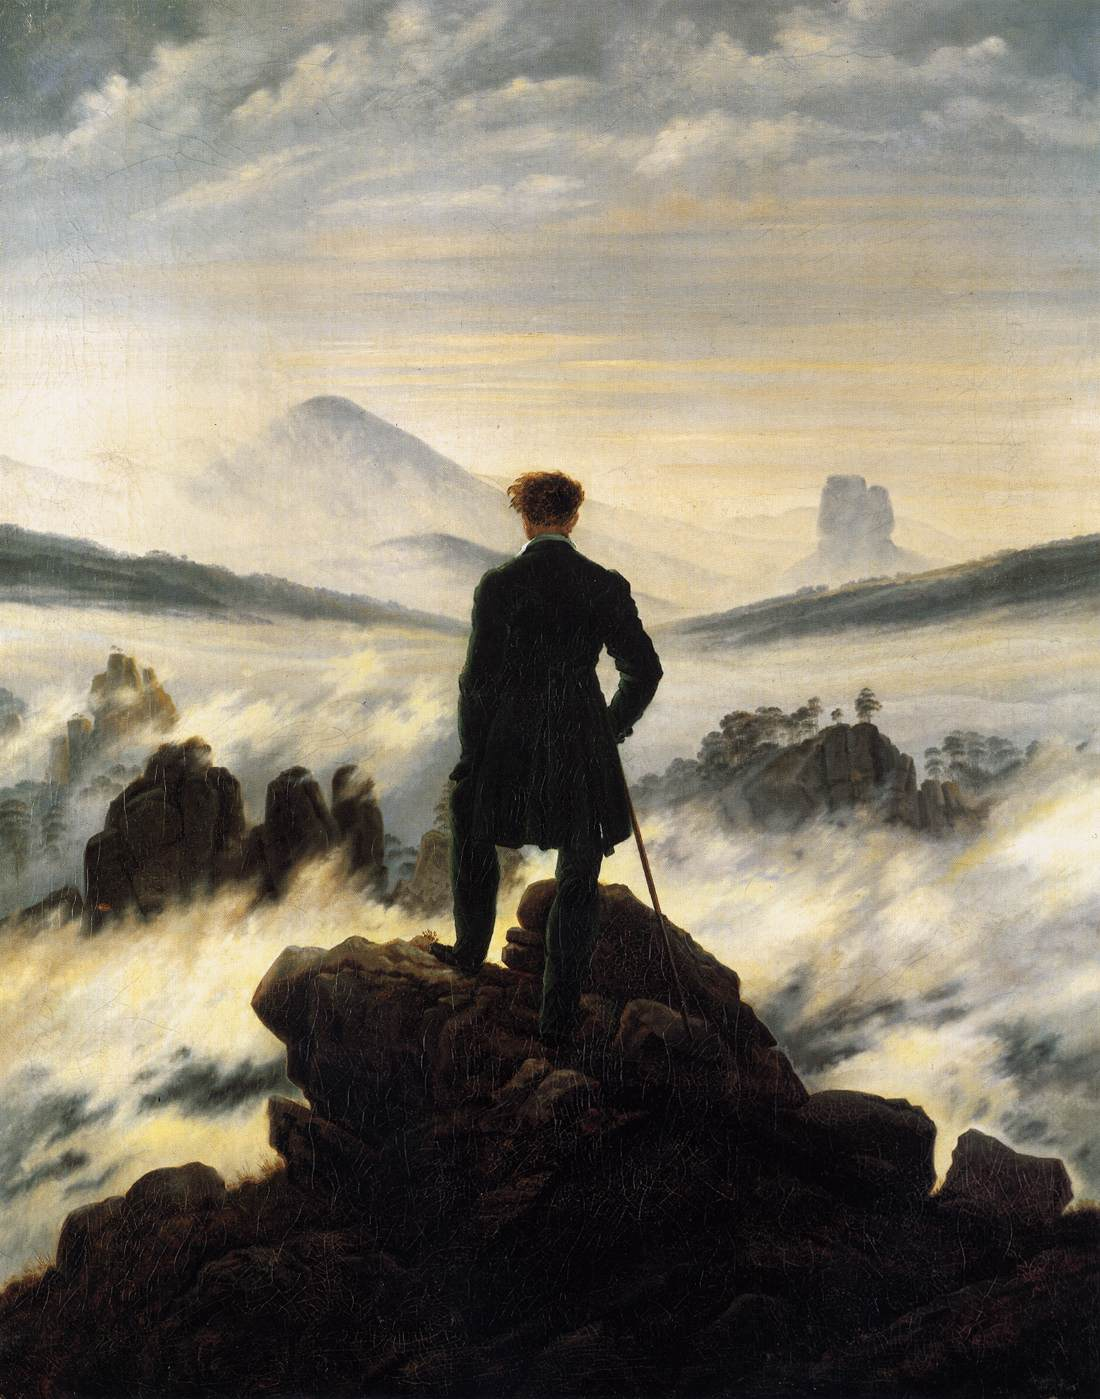 Caspar David Friedrich (1774-1840) Pittore tedesco romantici